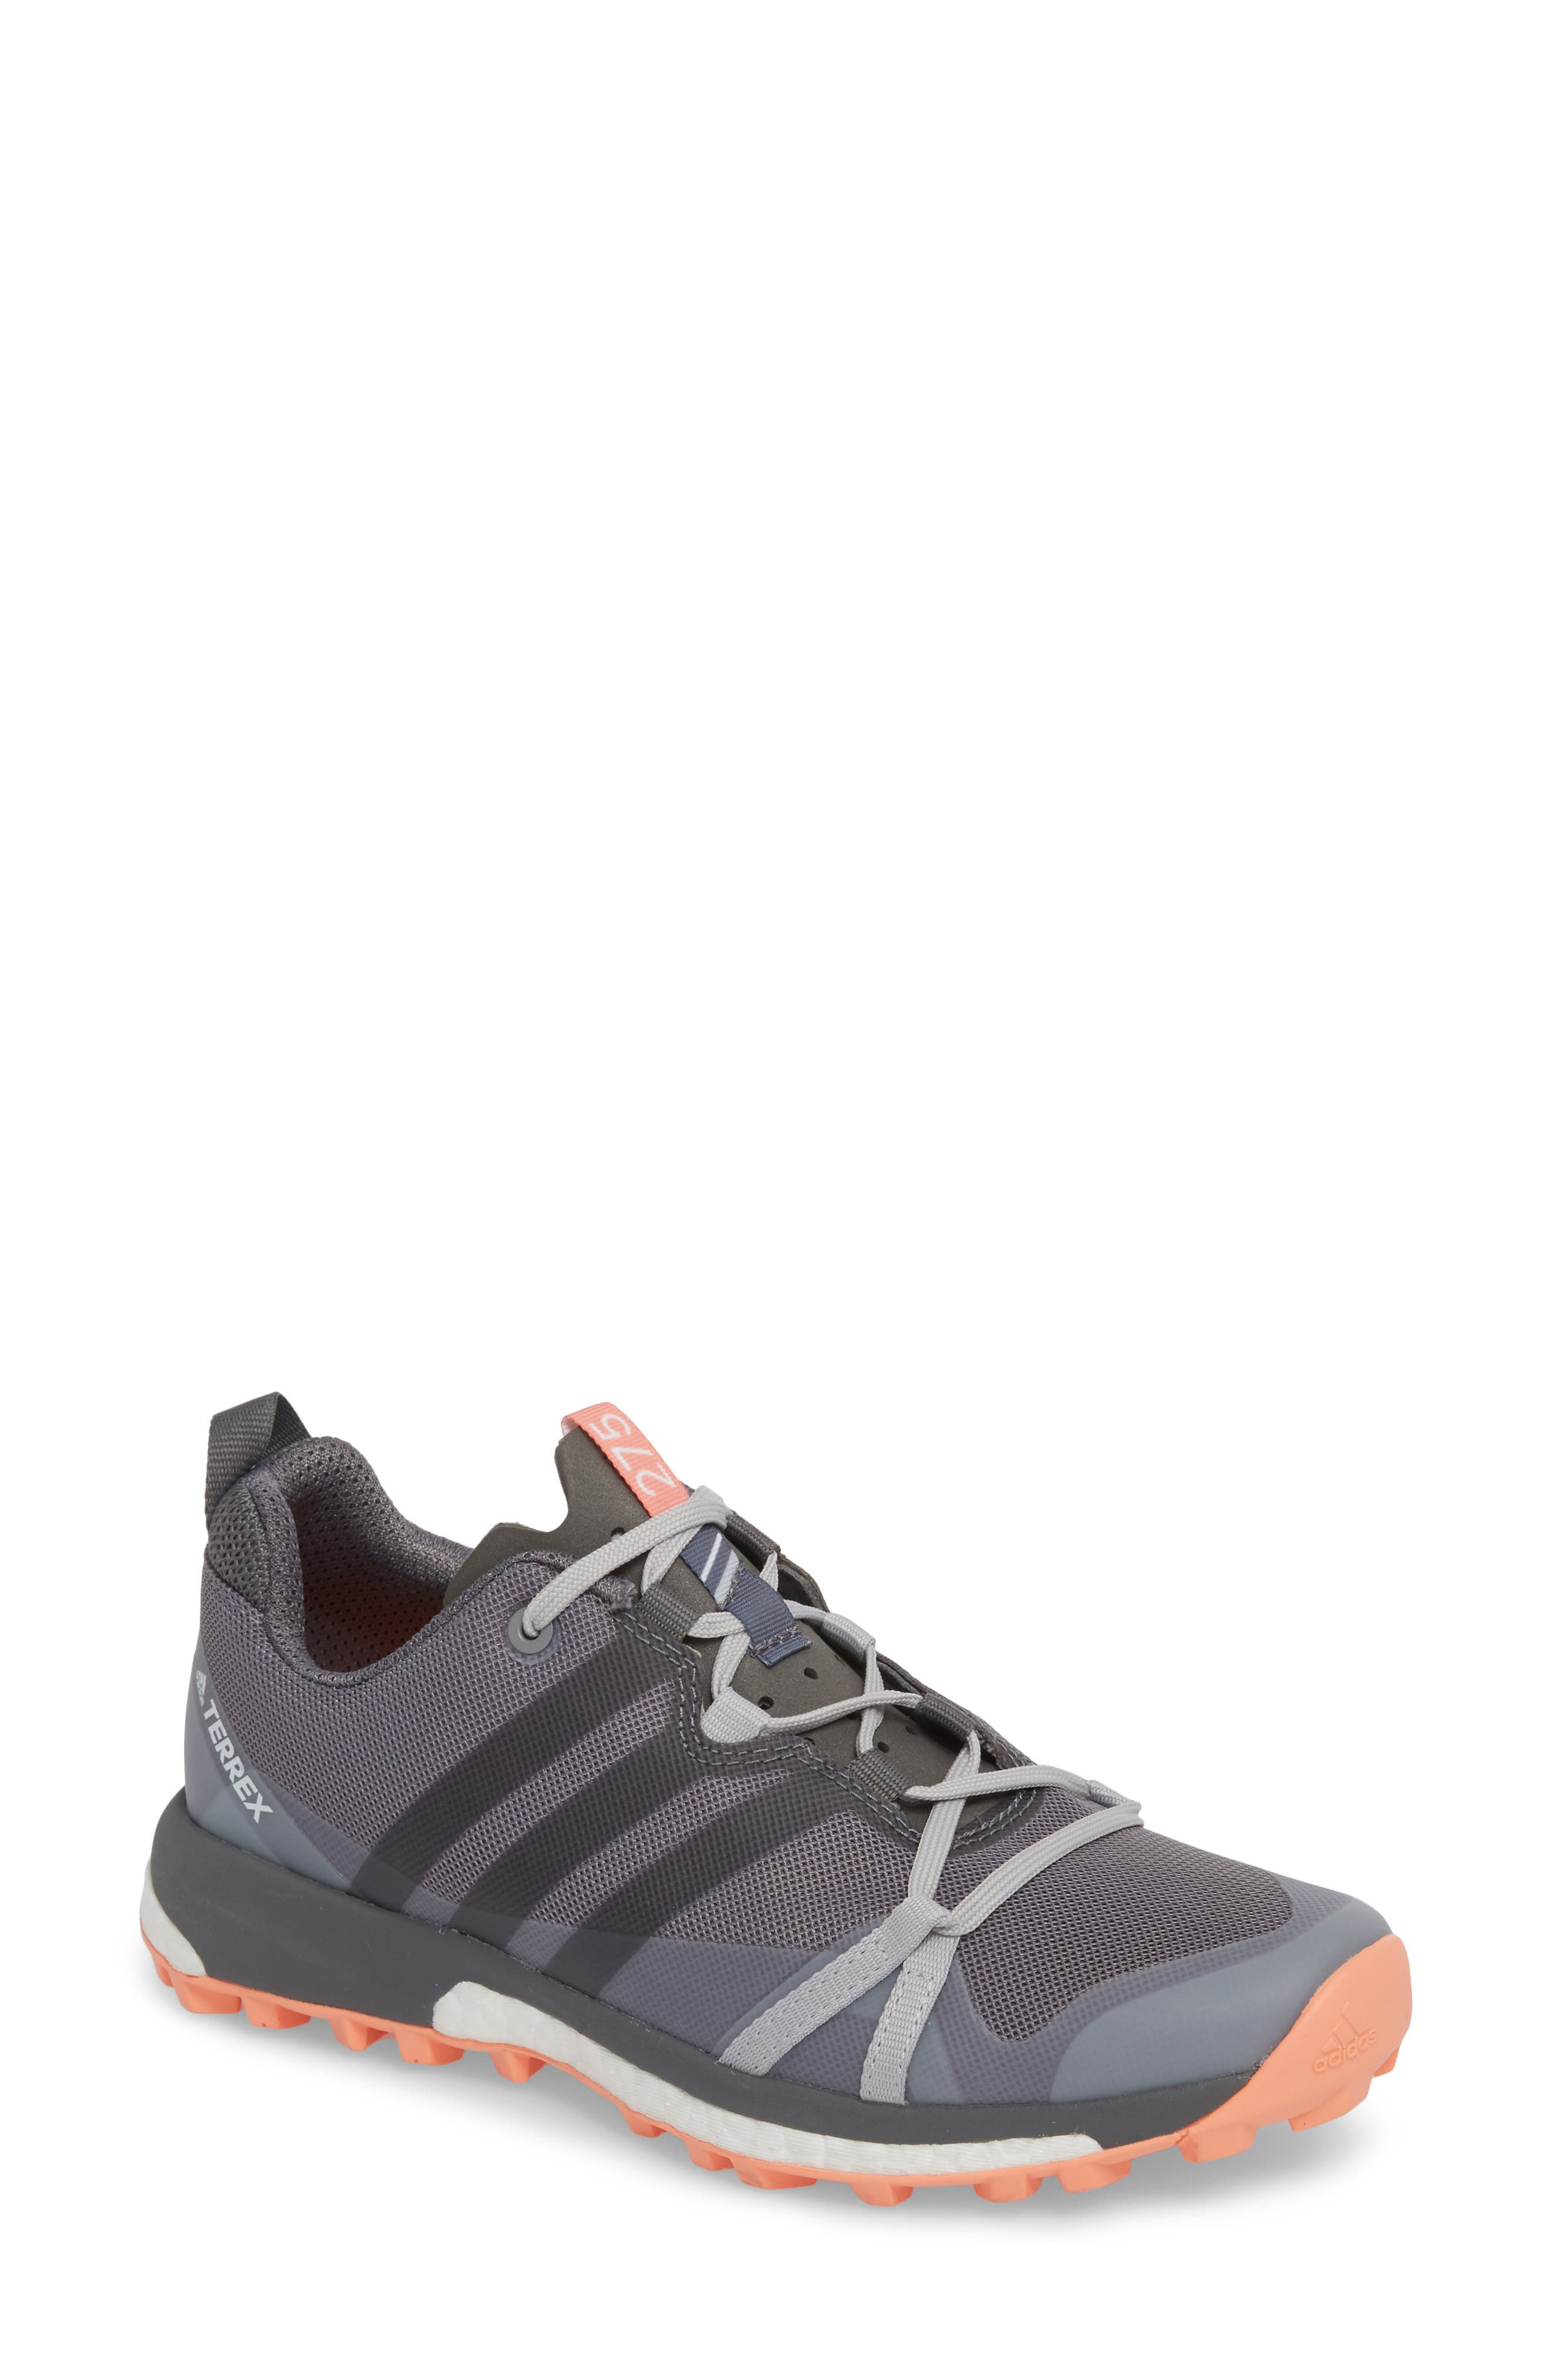 Terrex Agravic Trail Running Shoe,                         Main,                         color, Grey Three/ Grey Four/ Coral